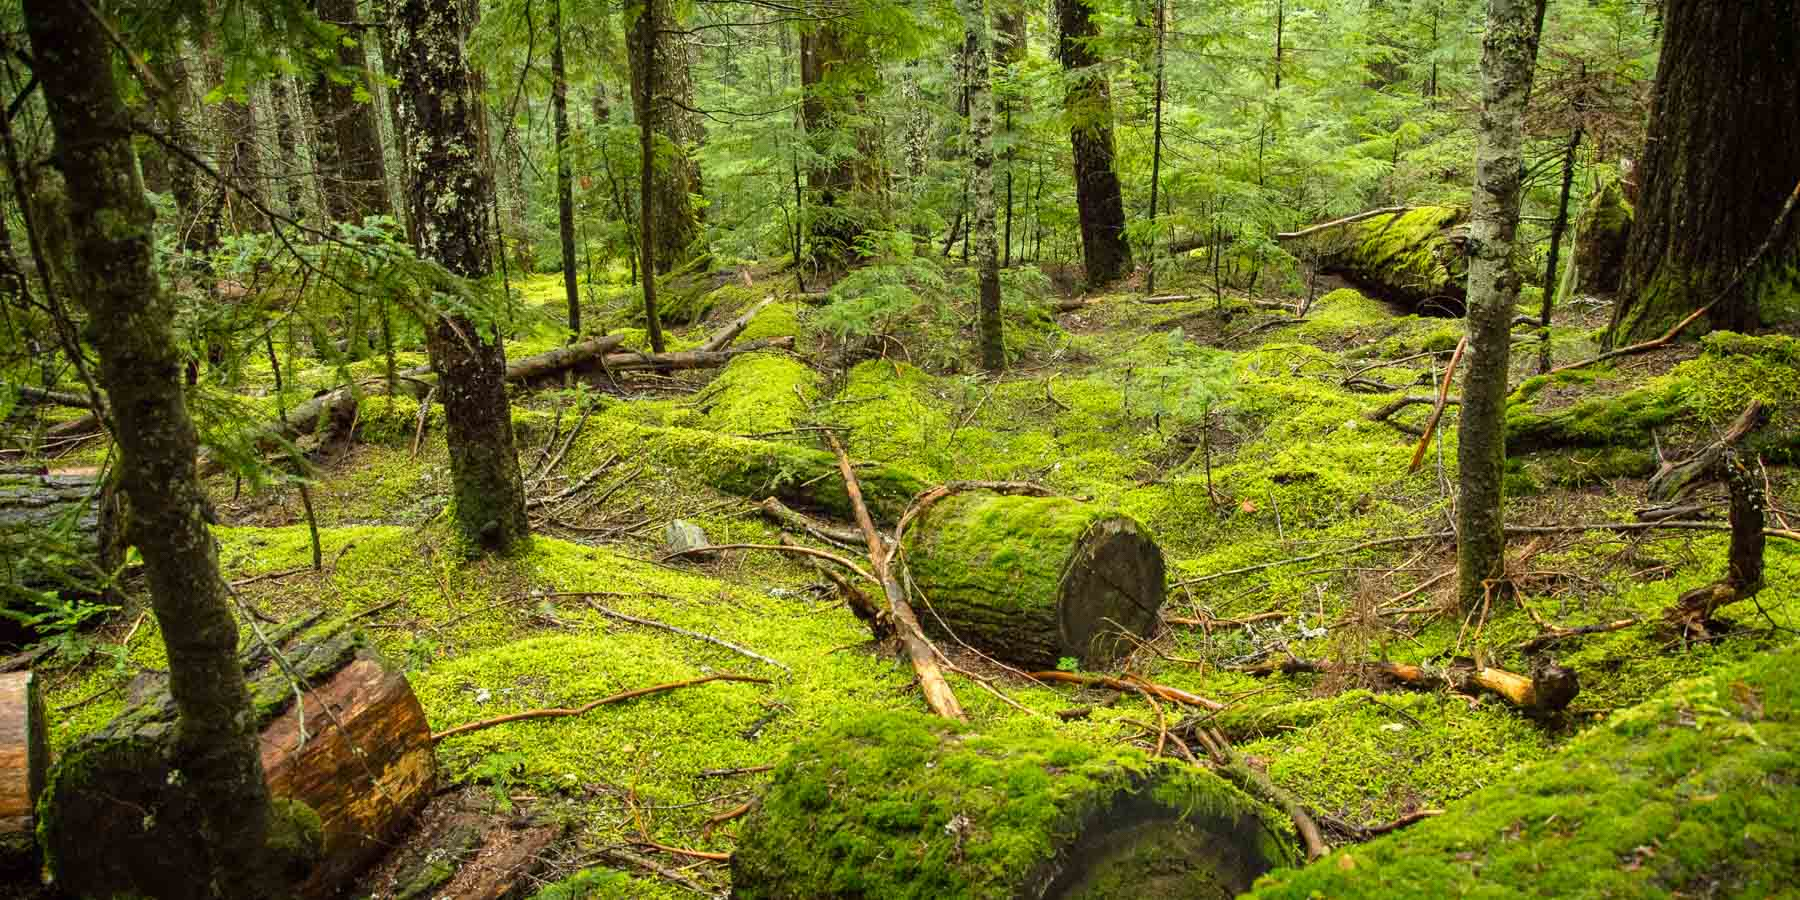 Moss overgrows a forest floor in this setting for forest bathing.